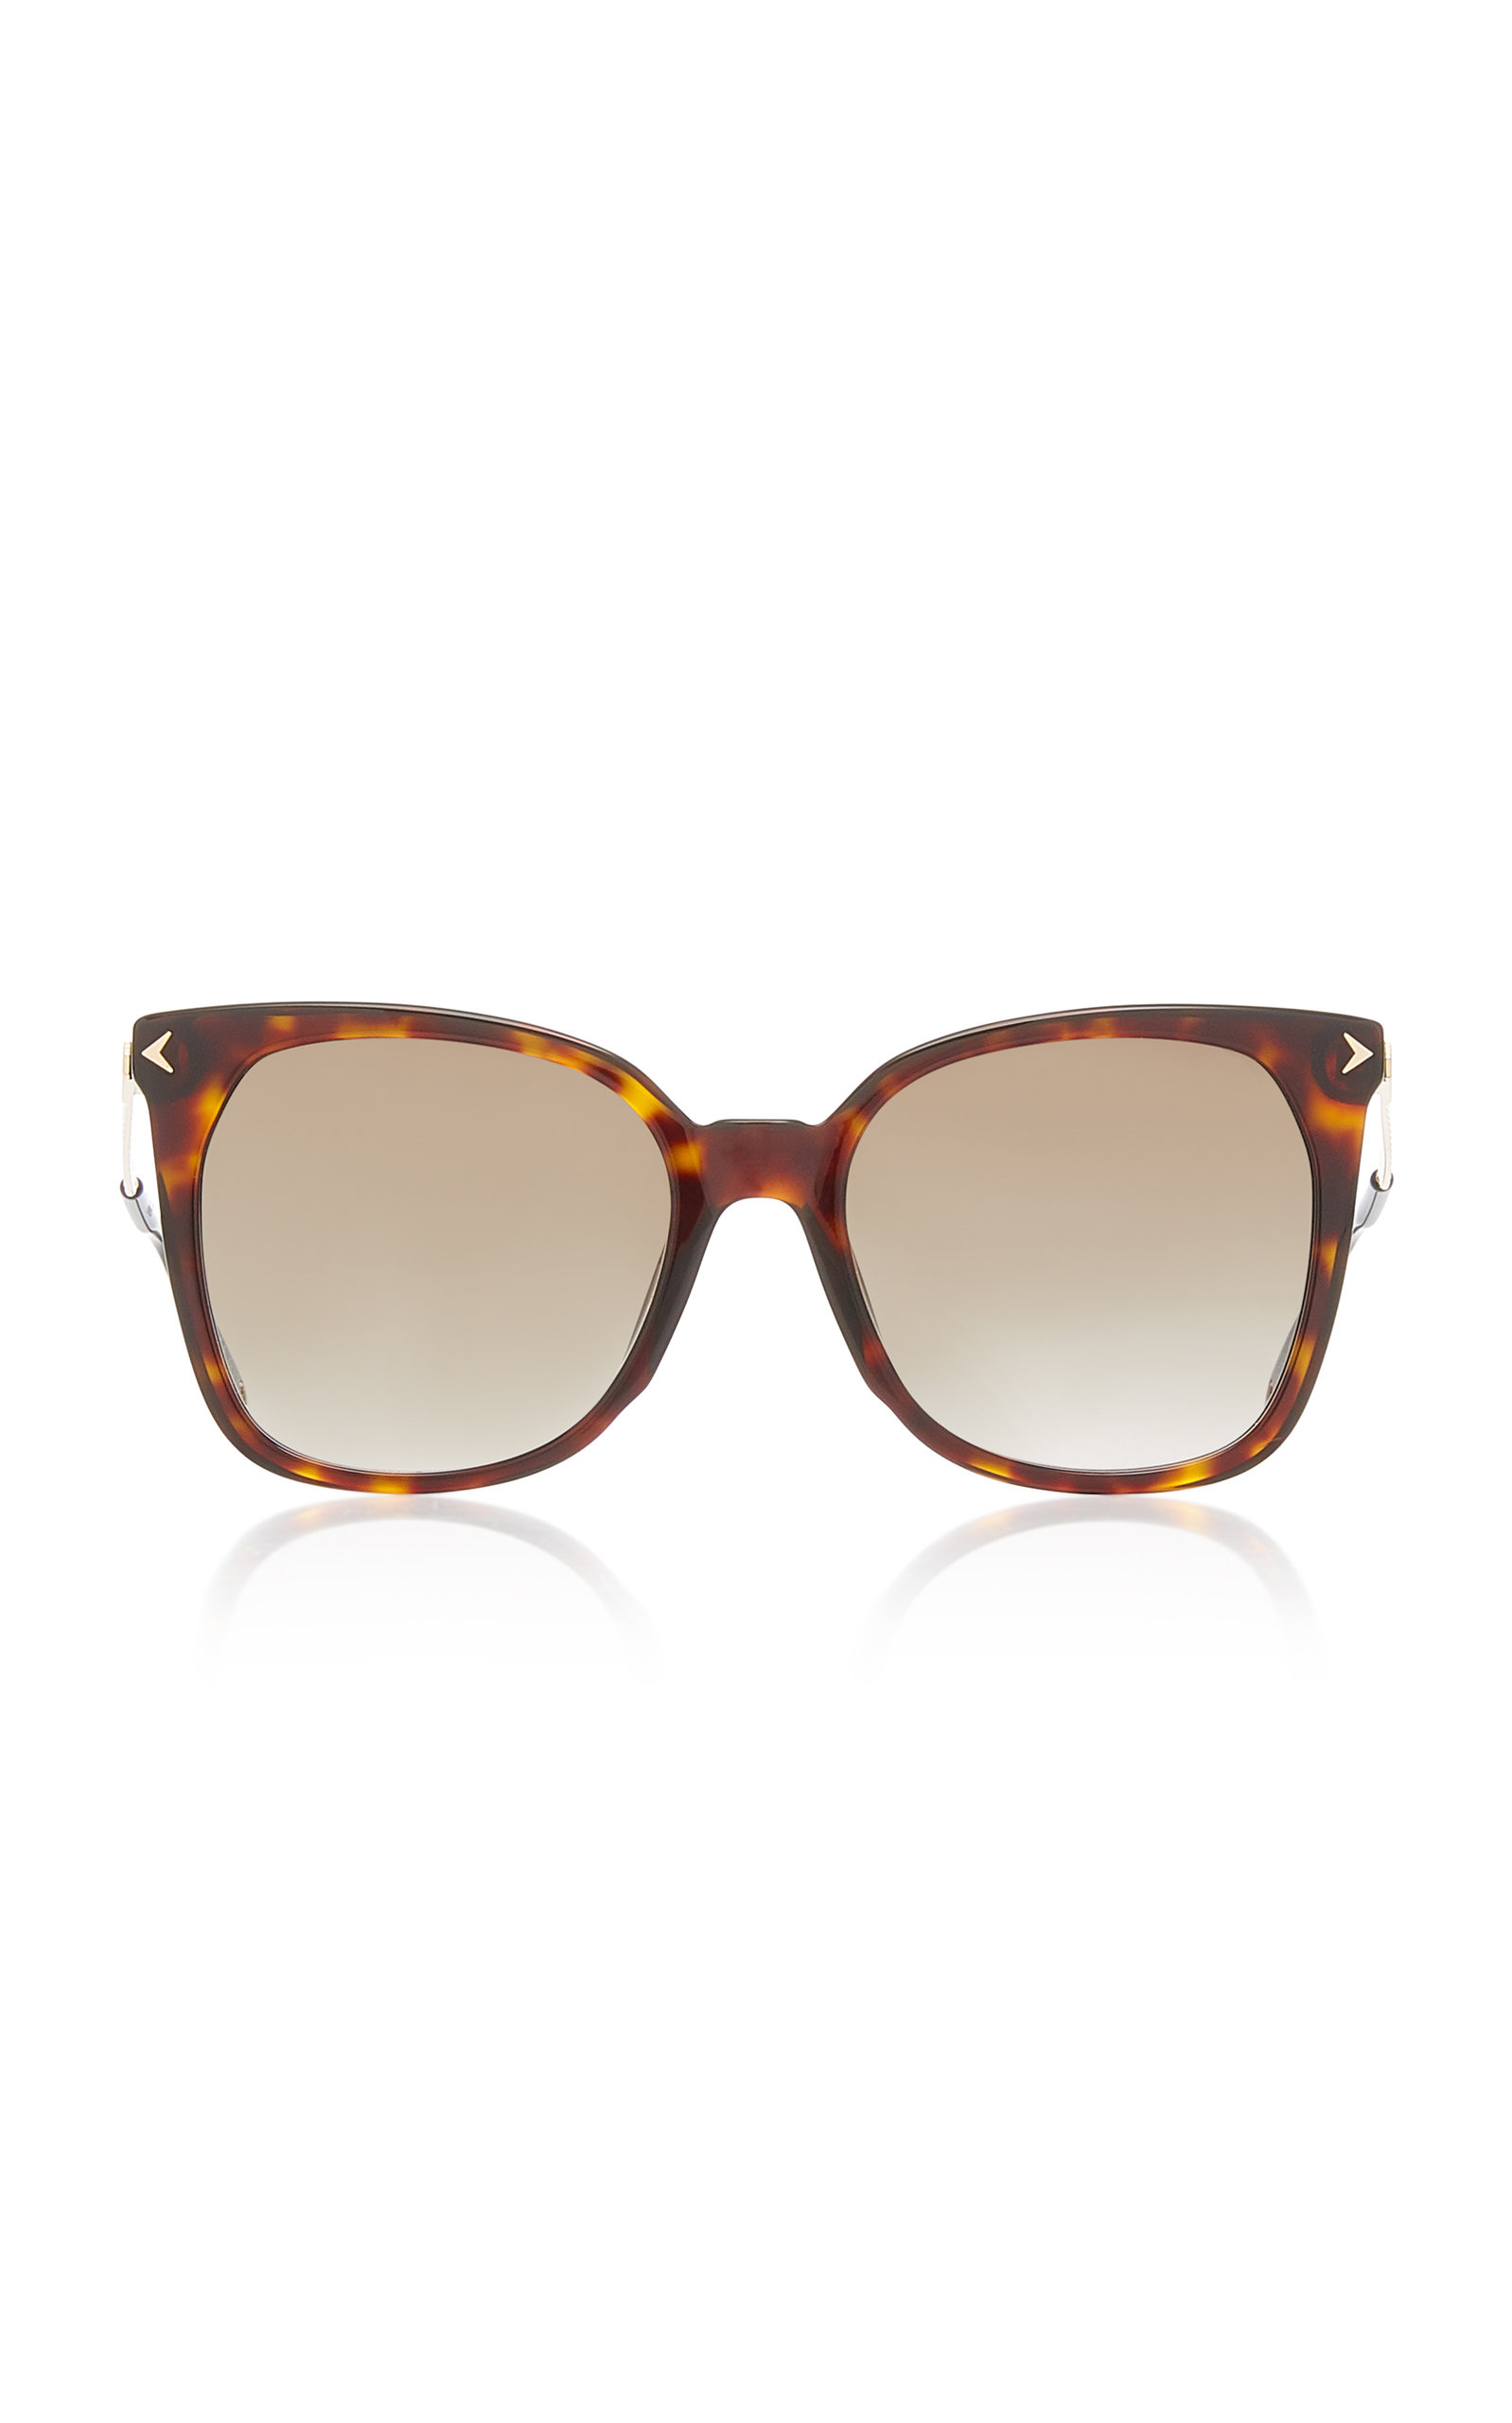 3d955a2ae062 Givenchy SunglassesOversized Tortoise Square Sunglasses. CLOSE. Loading